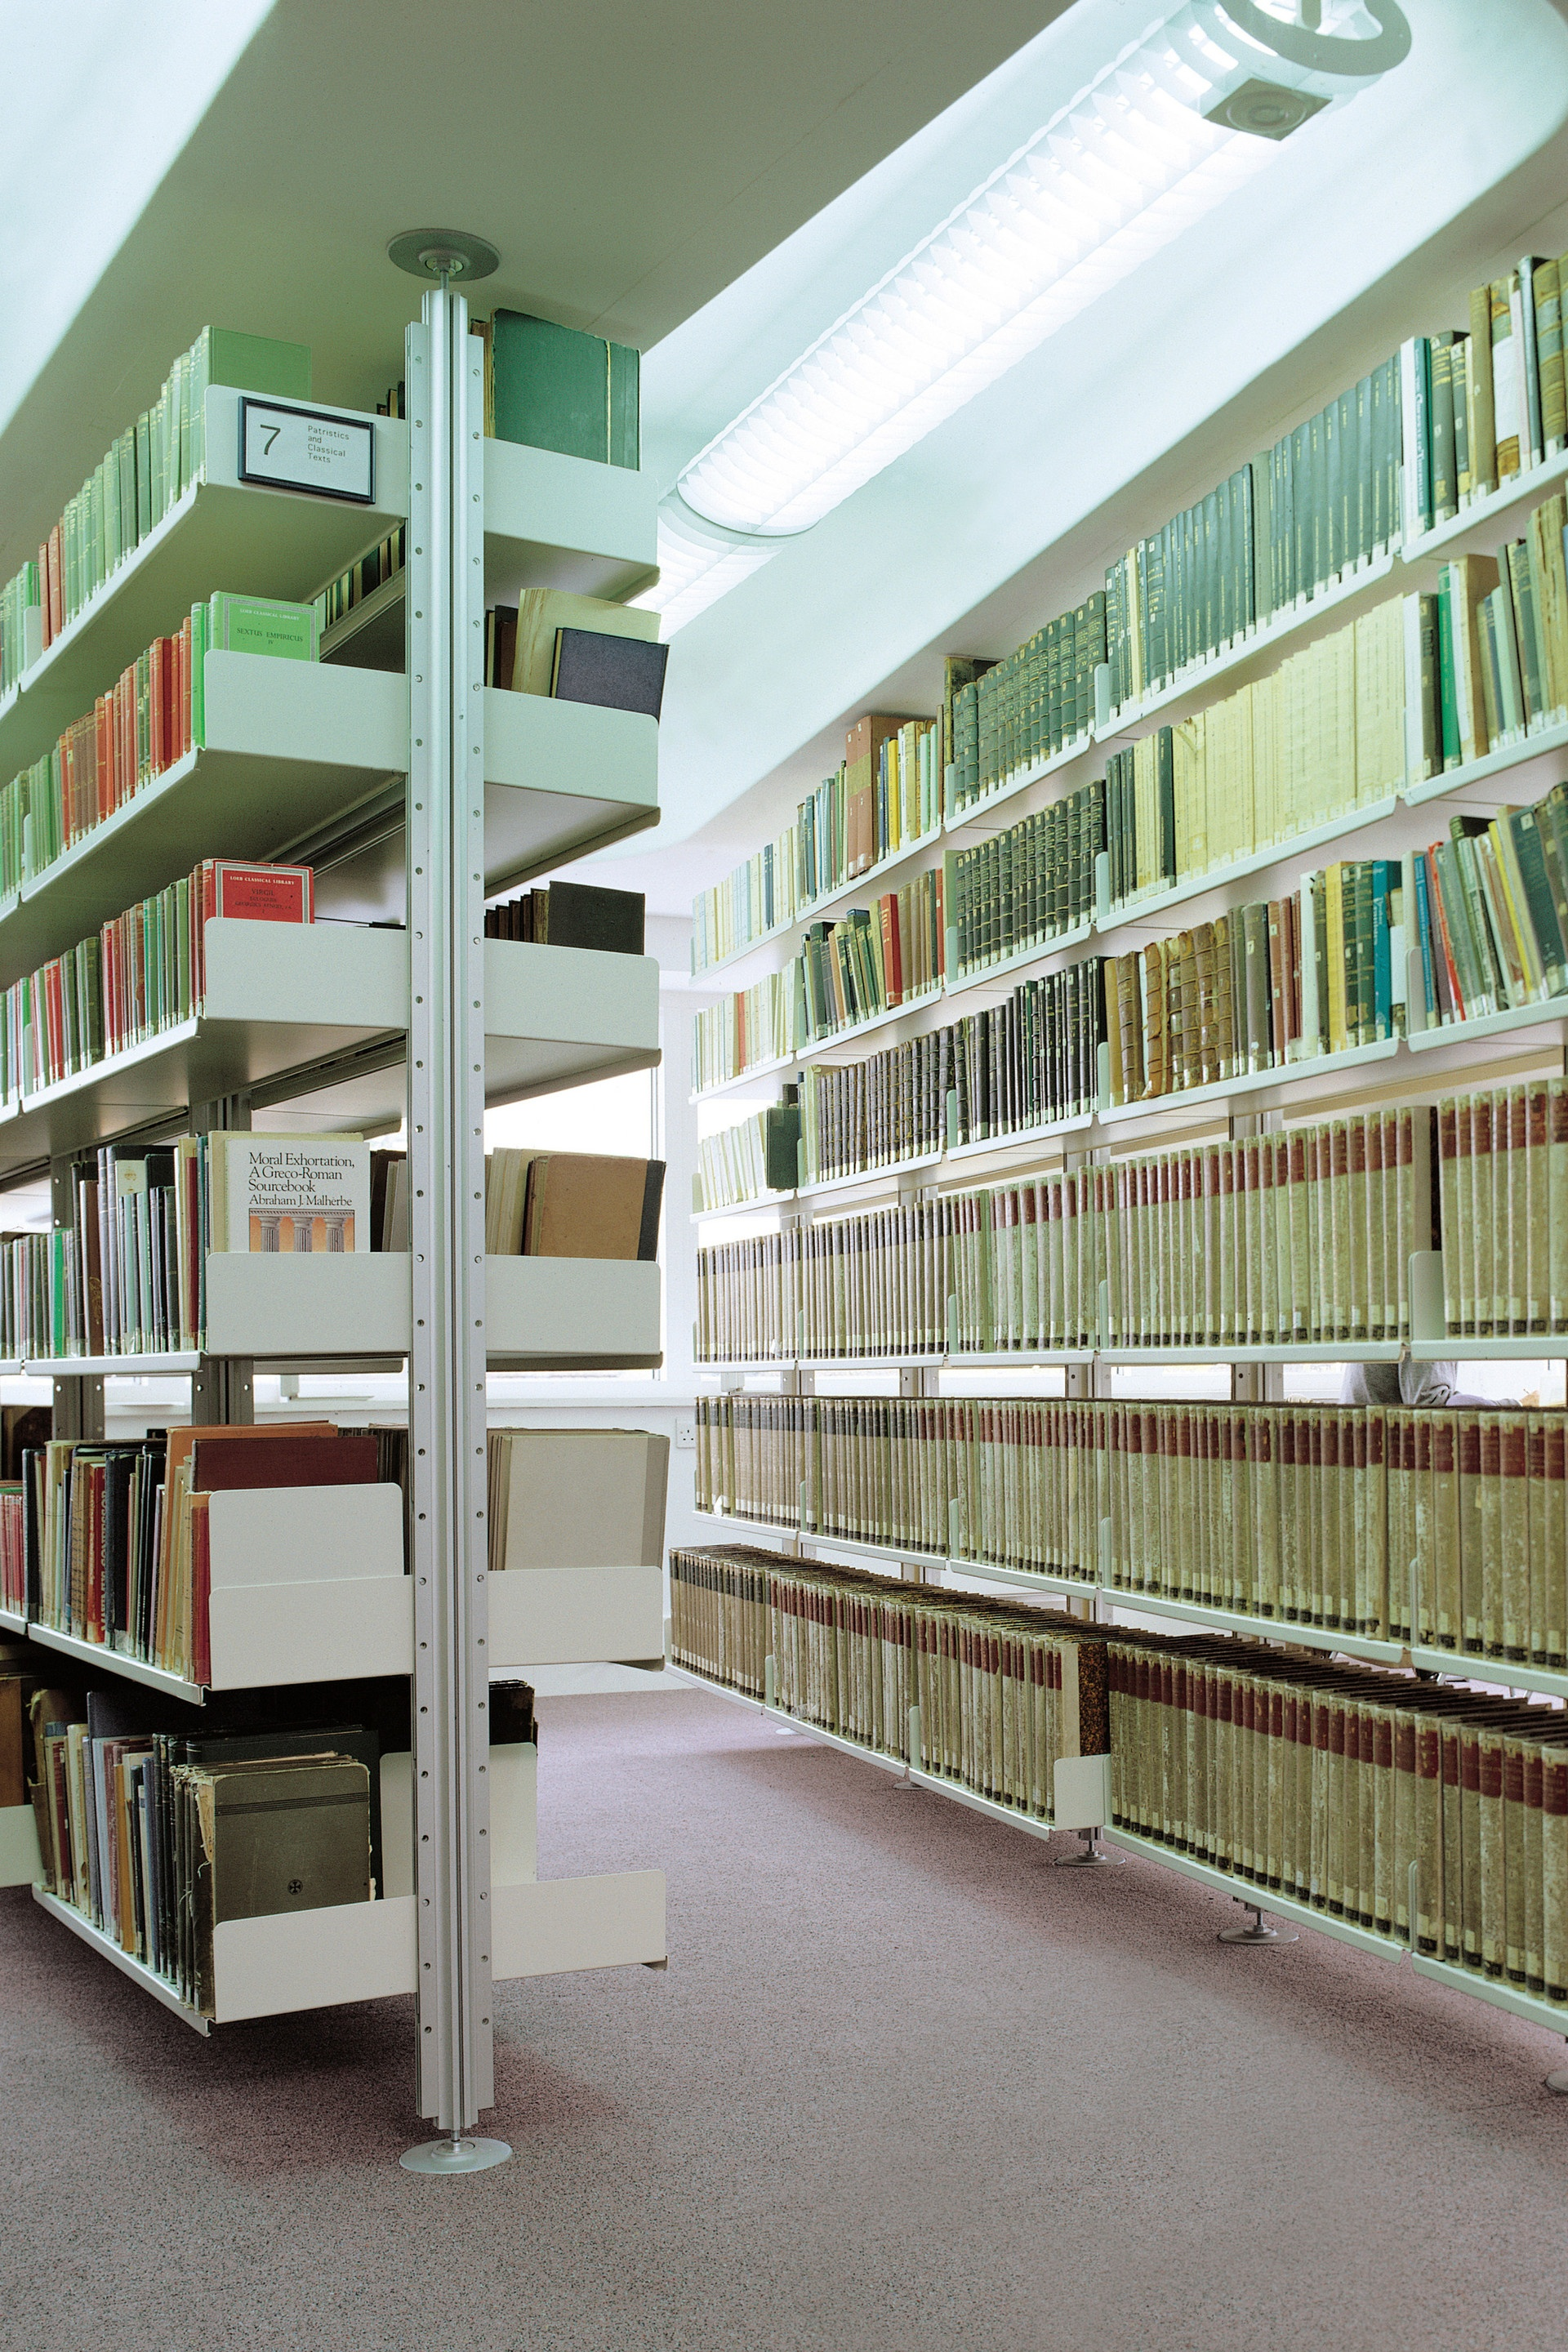 The demands of a university library are met by the shelving system compressed between (concrete) floor and ceiling